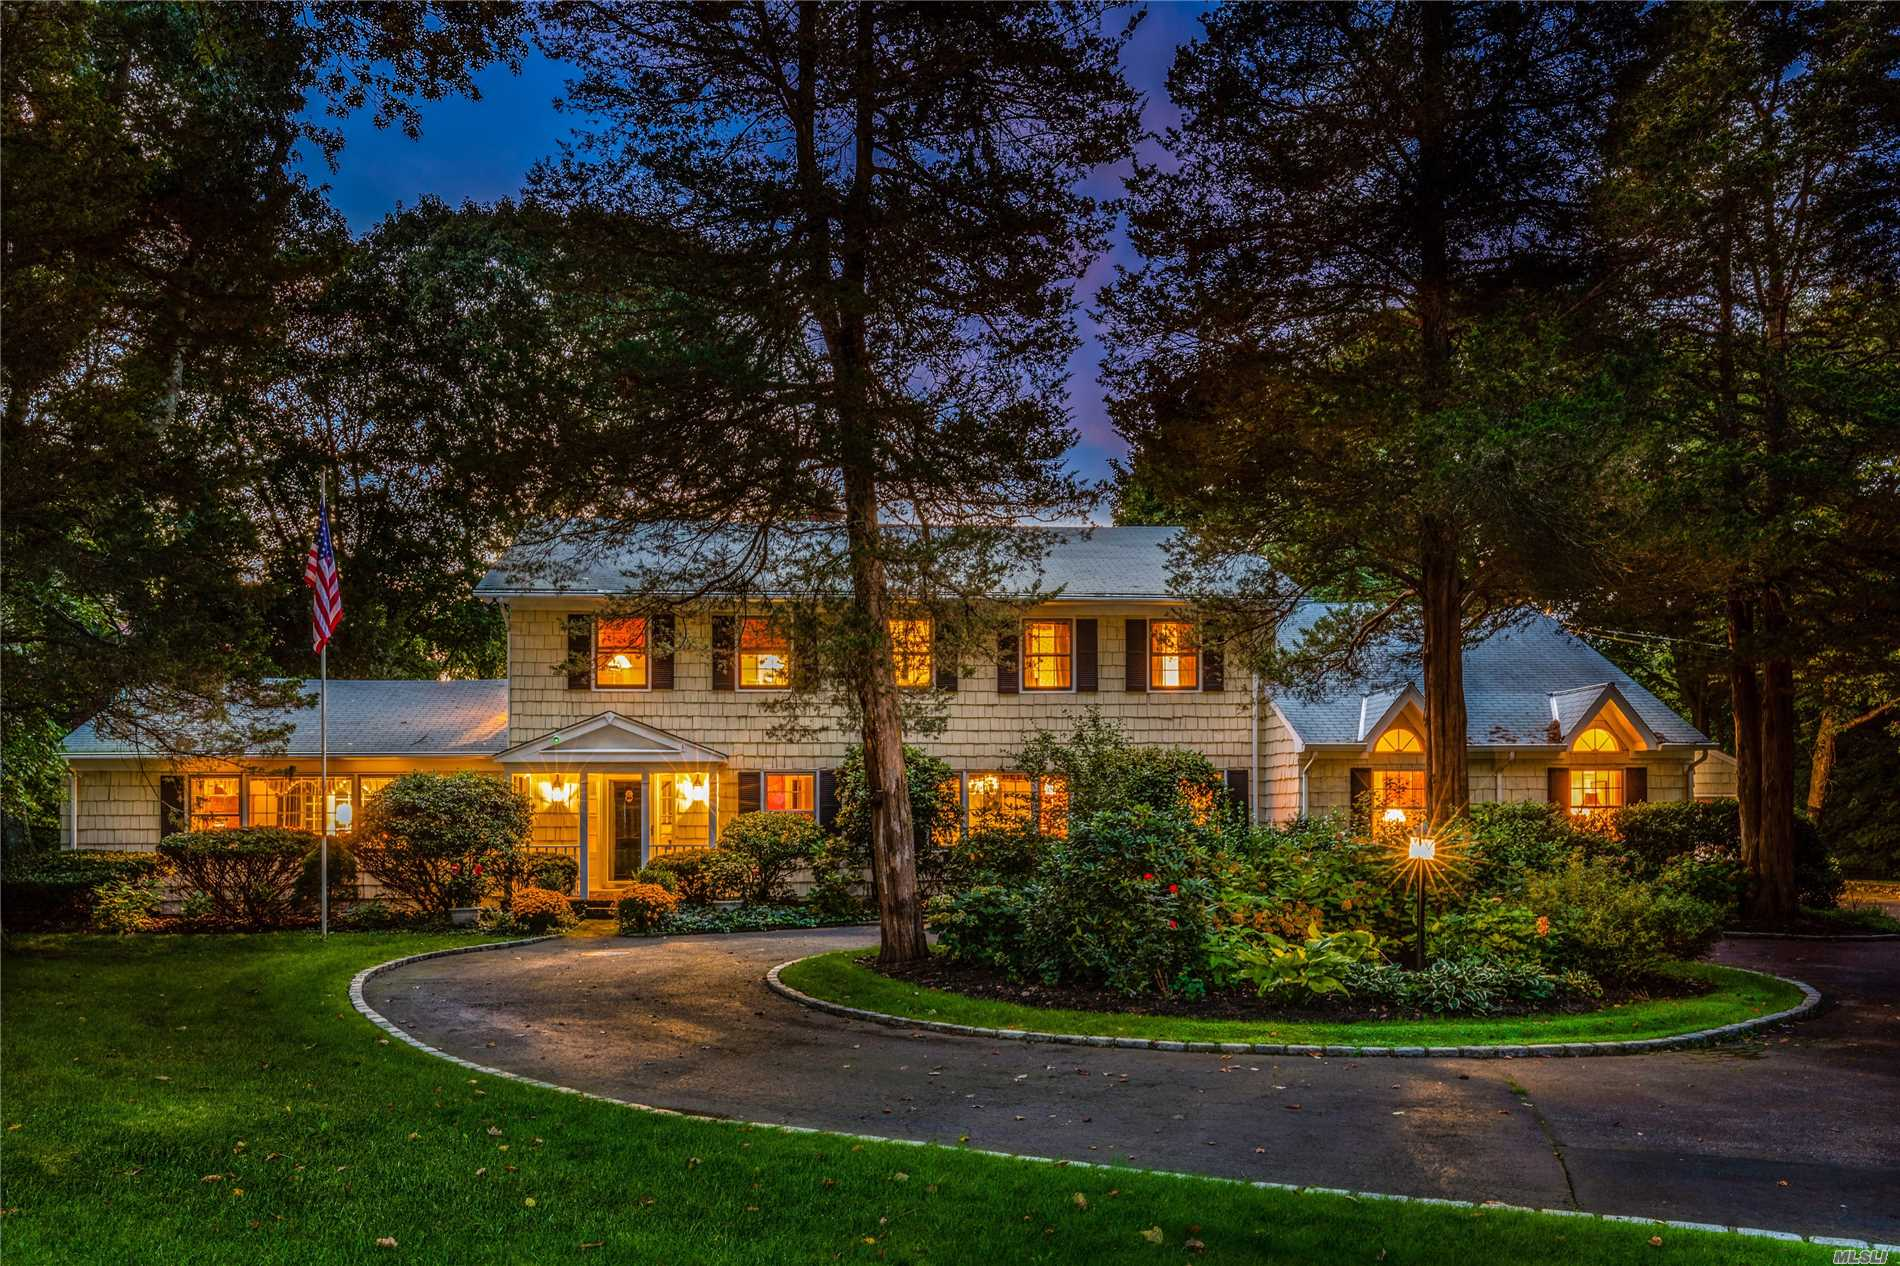 Brand New To Market! Set Back & Surrounded By Towering Trees & Lush Plantings On 2 Serene Acres, This Enchanting 4100Sf Center Hall Colonial Is The Epitome Of Gracious North Shore Living. Special Amenities Include A Two Story Great Room, Paneled Library, Updated Eat-In-Kitchen W/Gas Cooking, Screened-In Porch, 4 Fireplaces, 1st Fl Guest Suite & 4 Bedrooms On The 2nd Level. Amazing Outdoor Entertainment Space With A Lg Deck Leading To A Sparkling Gunite Pool W/Brick Patio.Close To Highways/Shops.